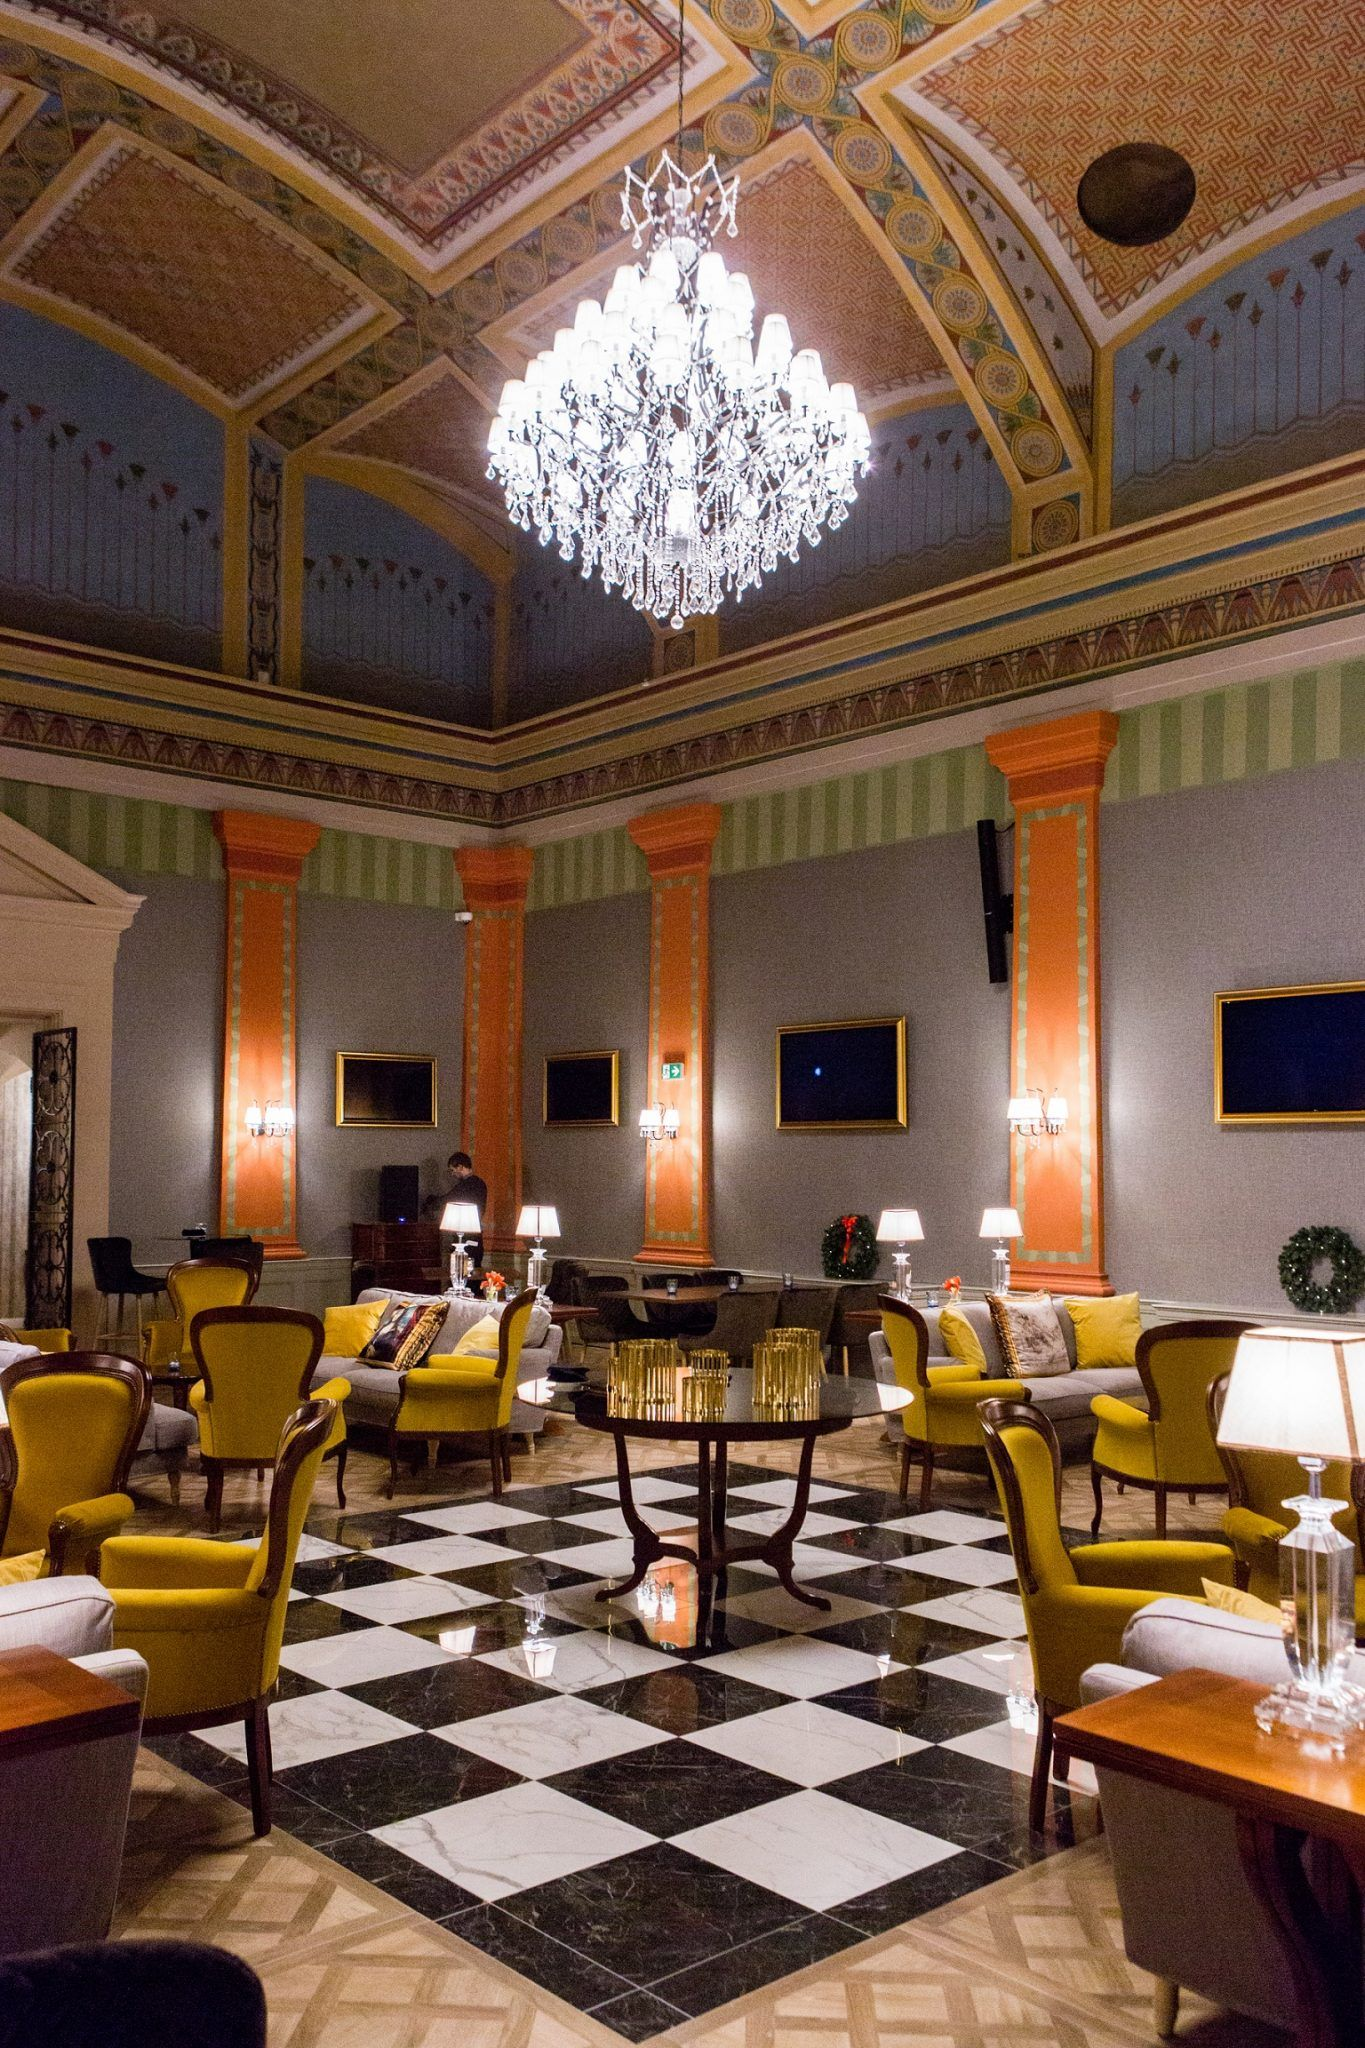 The Great Hall - Mystery Hotel Budapest